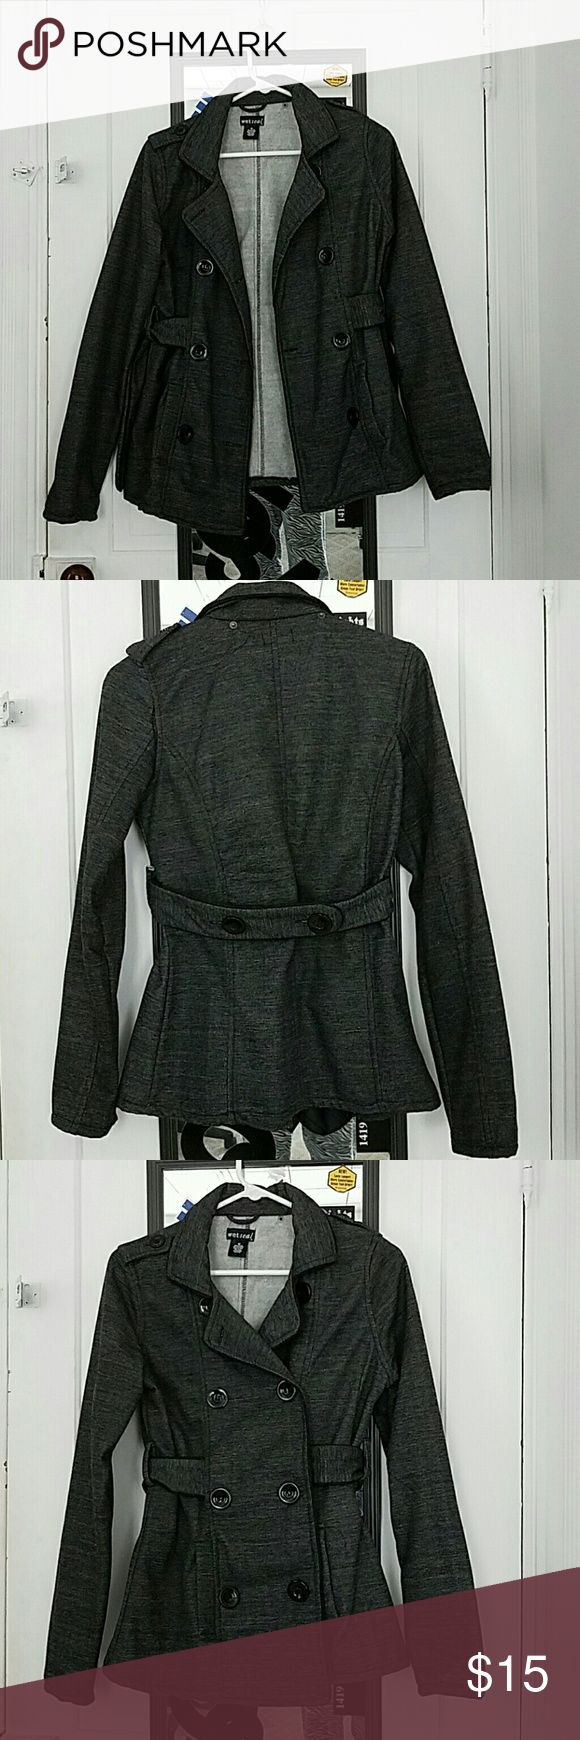 Wet Seal light fall peacoat dark grey peacoat  with detachable hood (not pictured), black buttons, collar. Light, soft and comfortable. Worn twice. Wet Seal Jackets & Coats Pea Coats